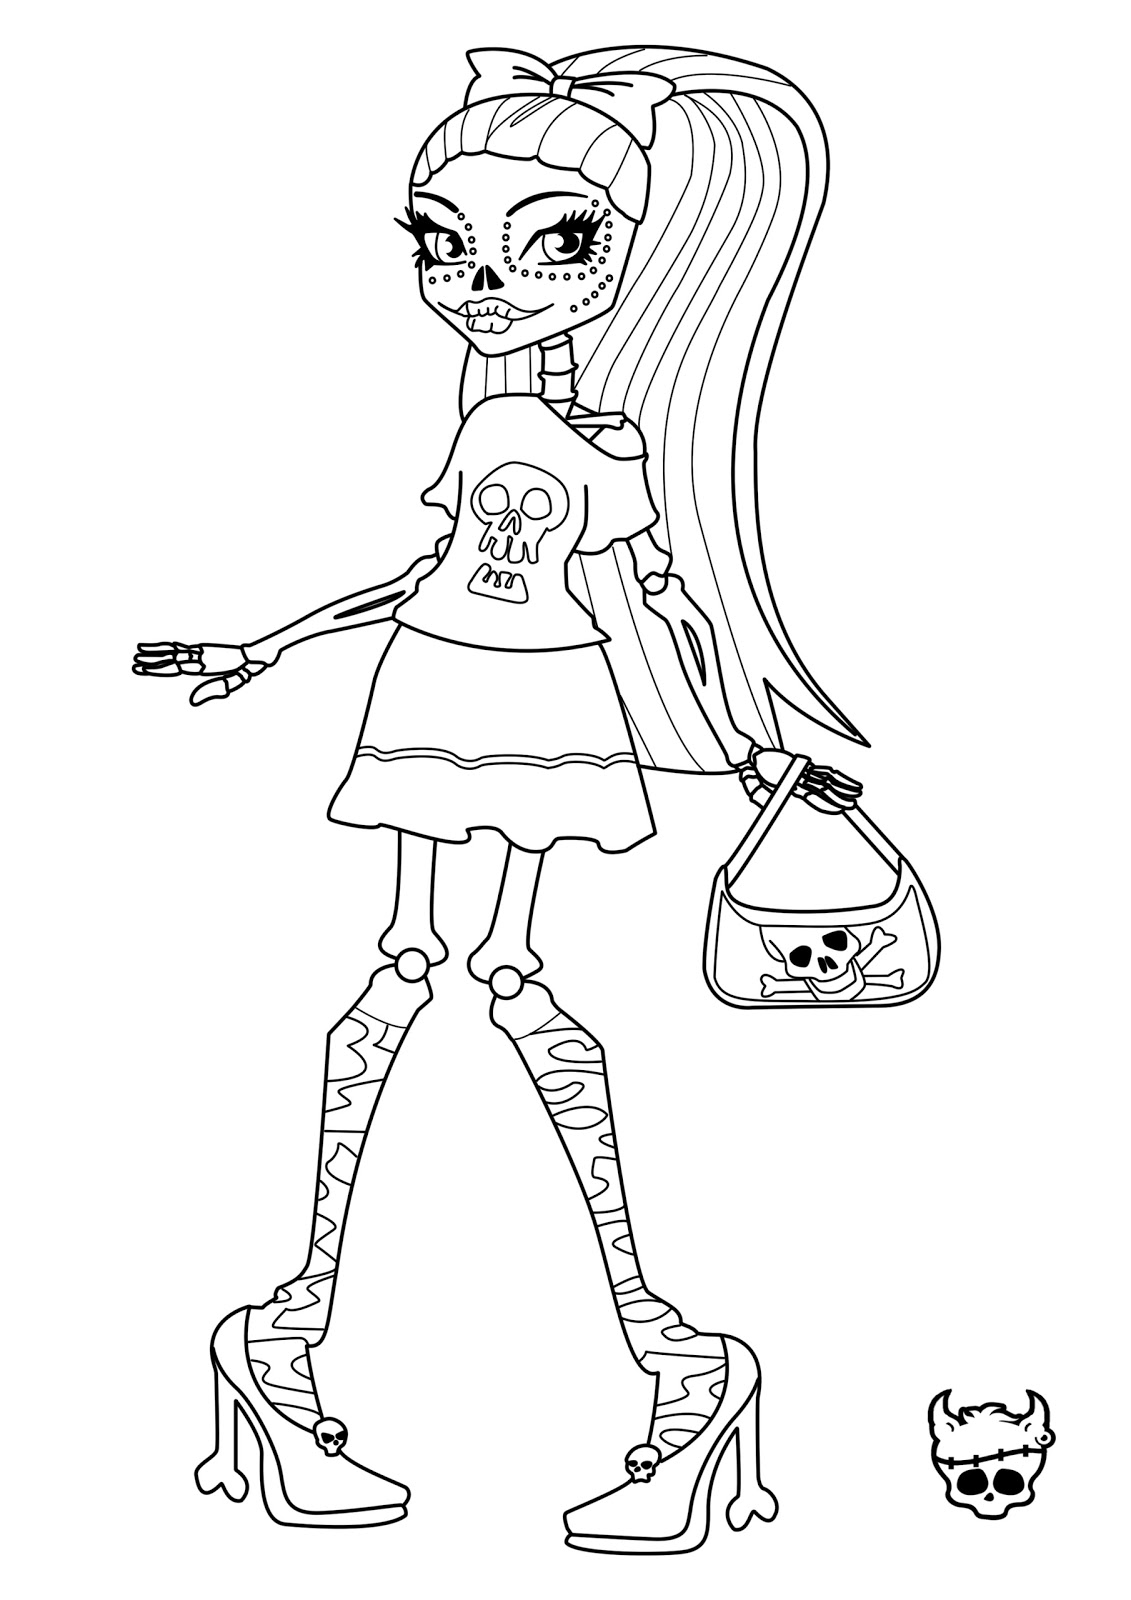 monster high colouring sheet monster high printable coloring pages cleo de nile monster high sheet colouring